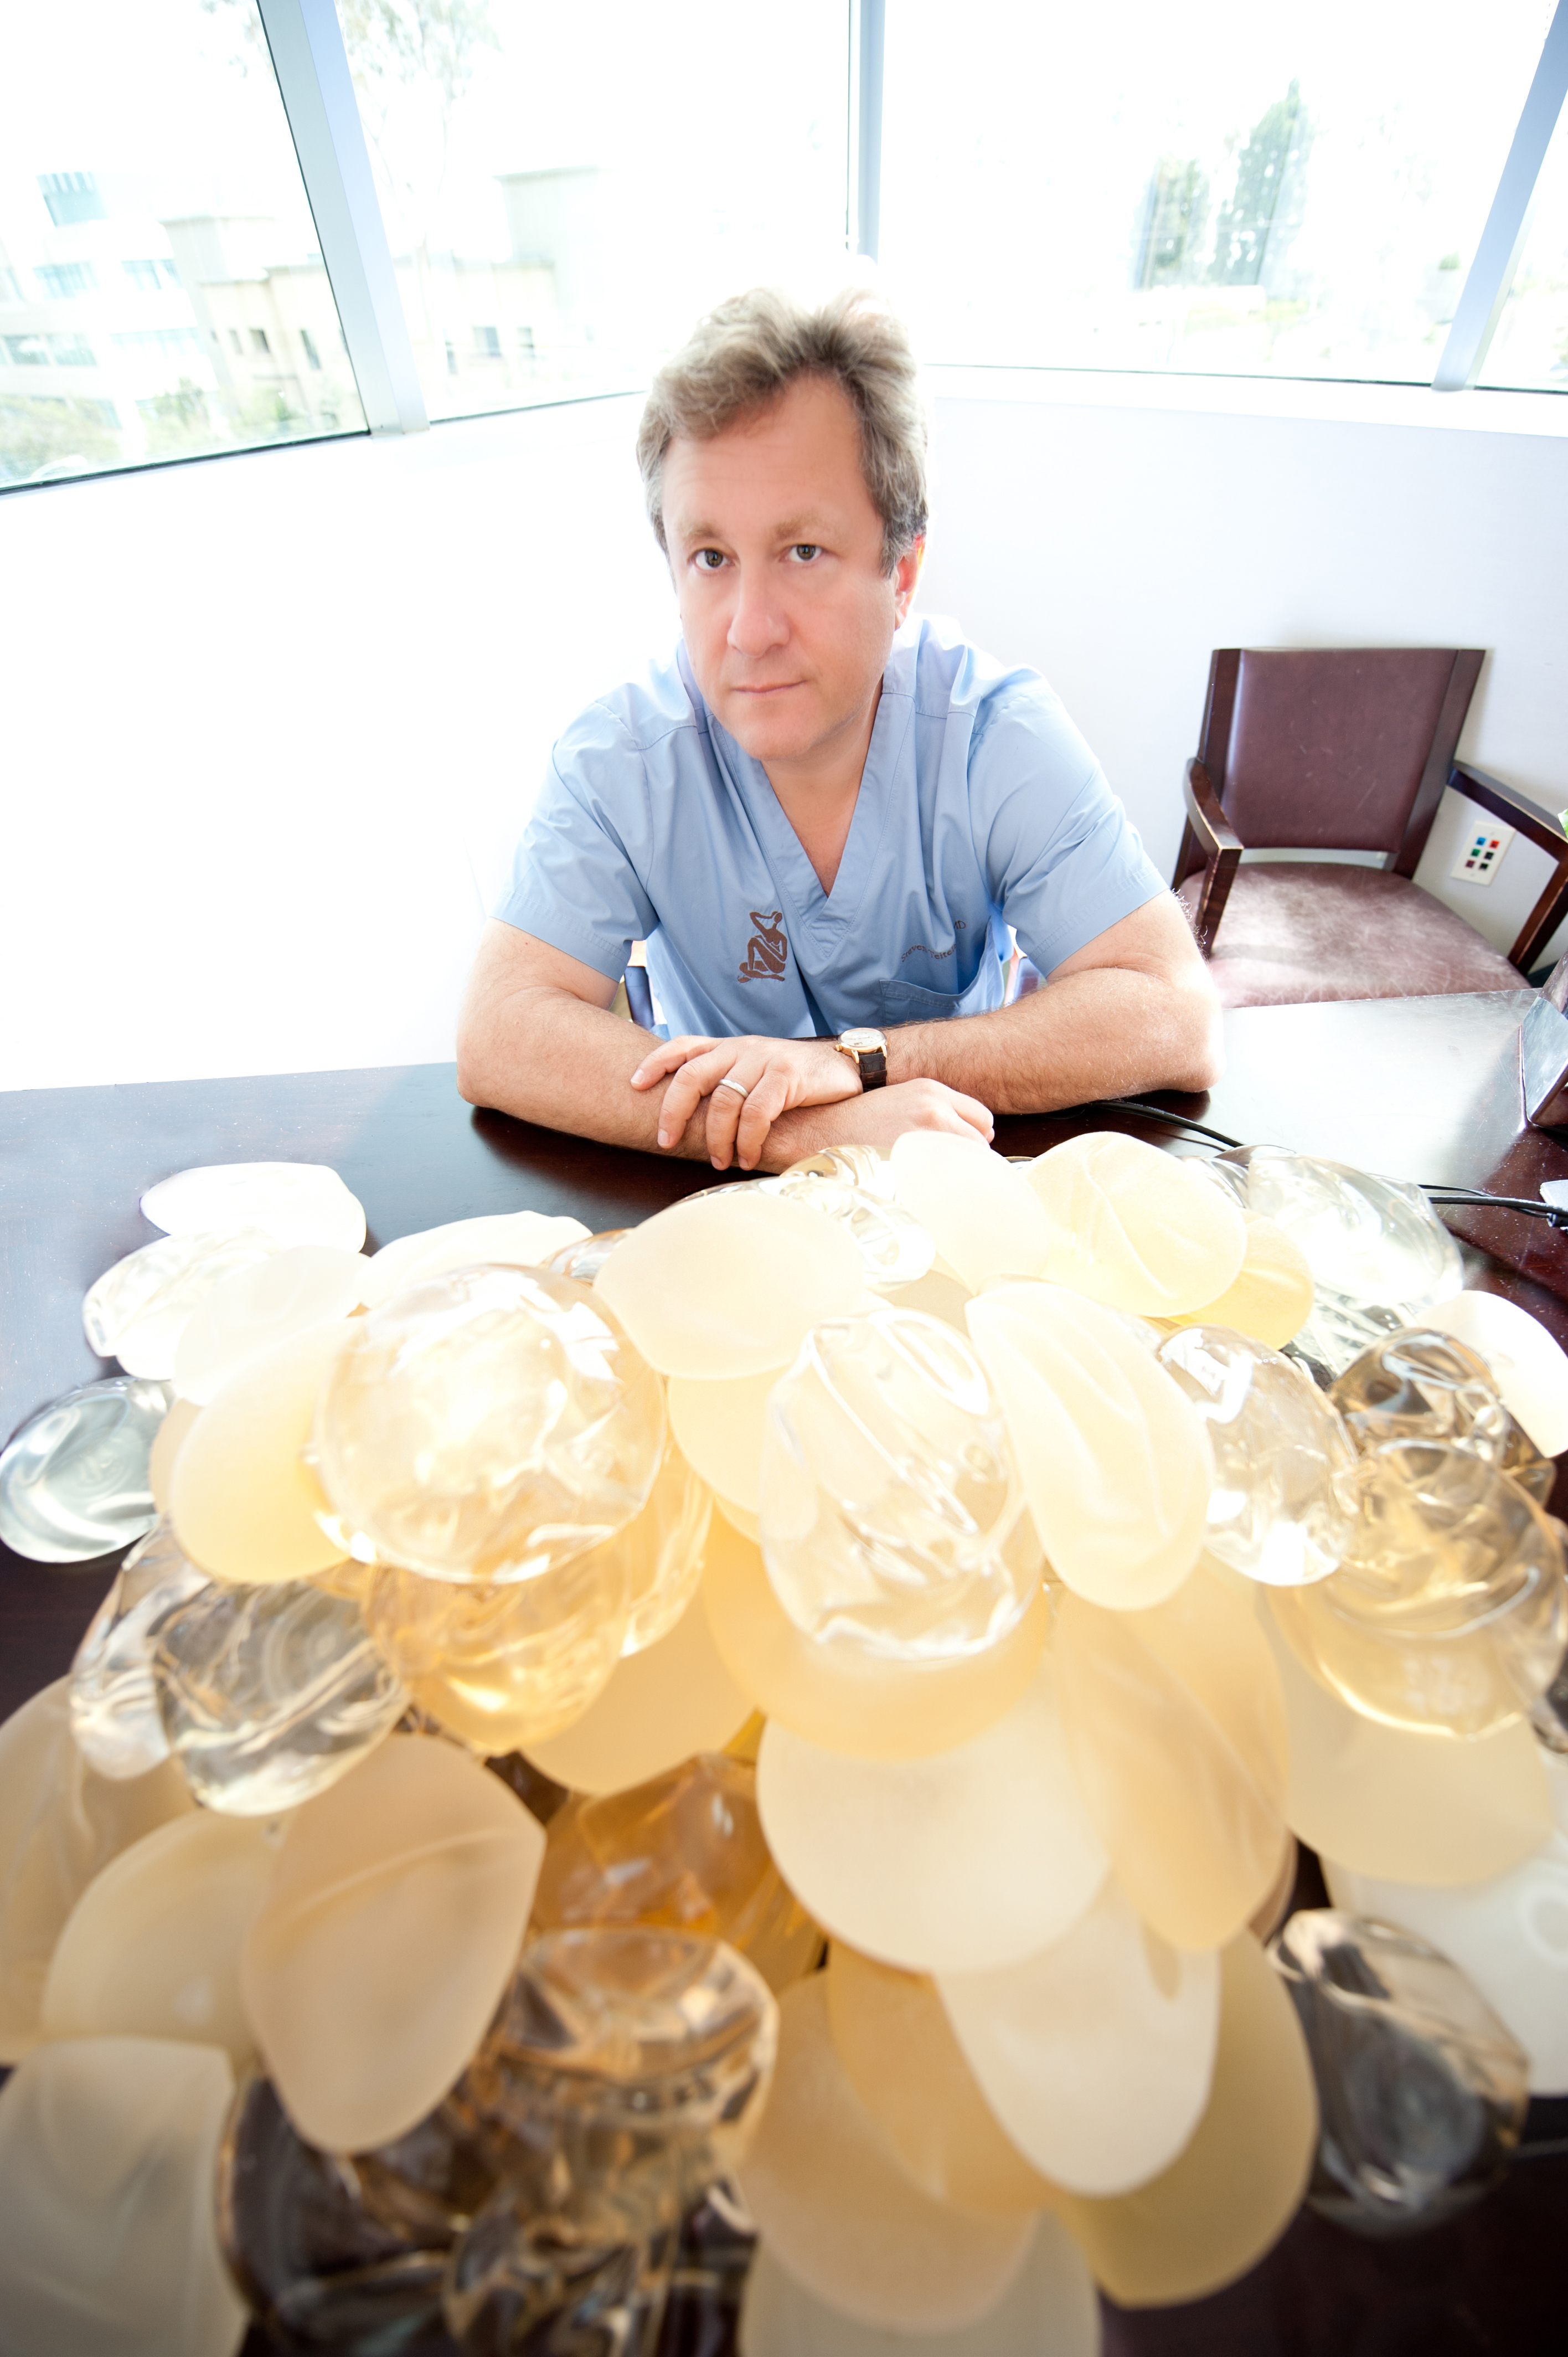 You Augmentation breast breast implant information web happens. Let's